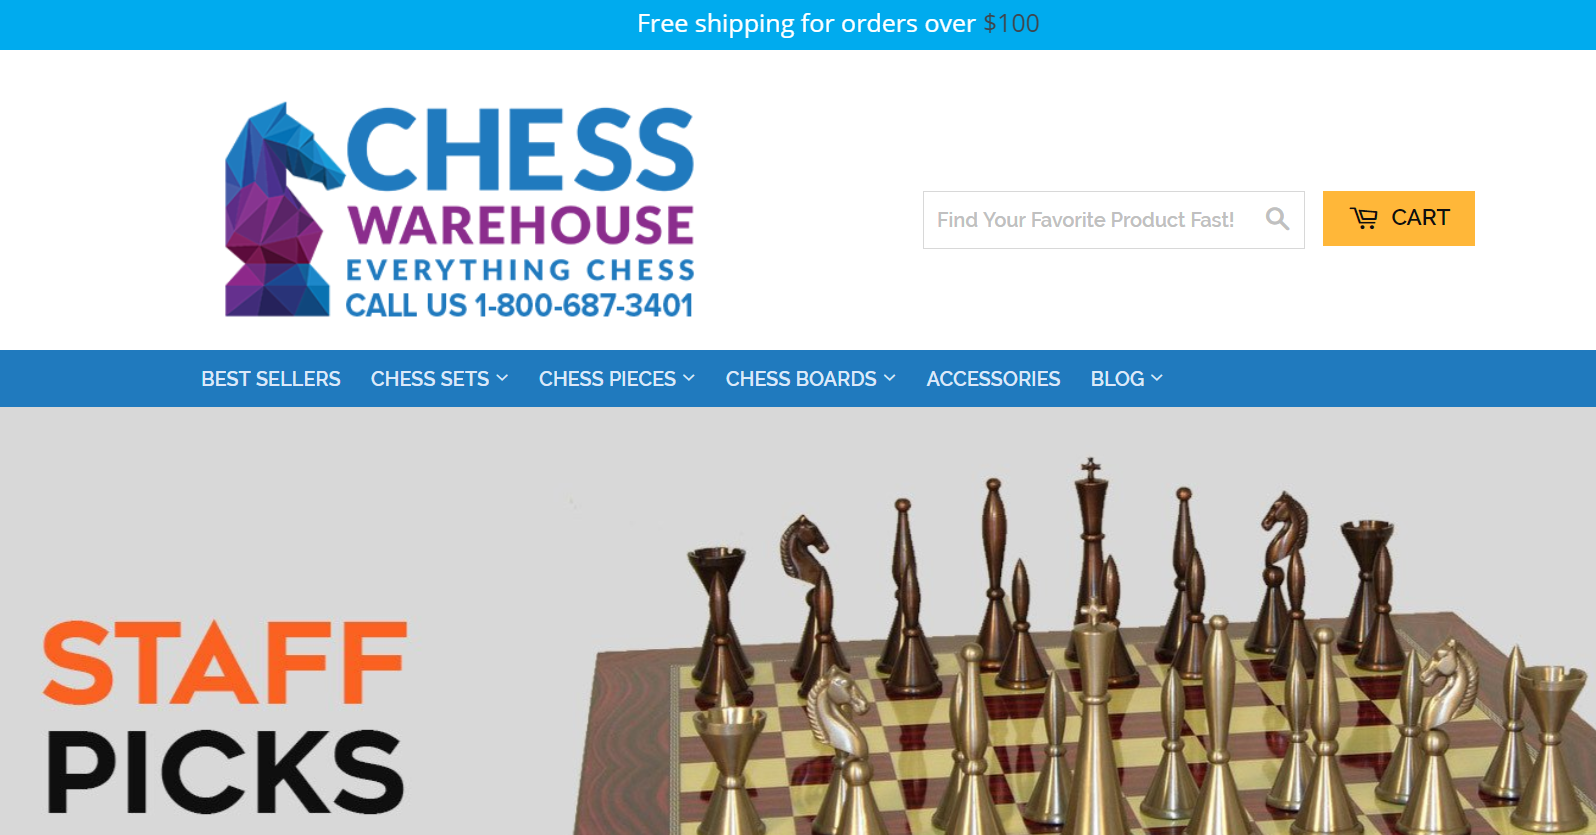 ChessWarehouse